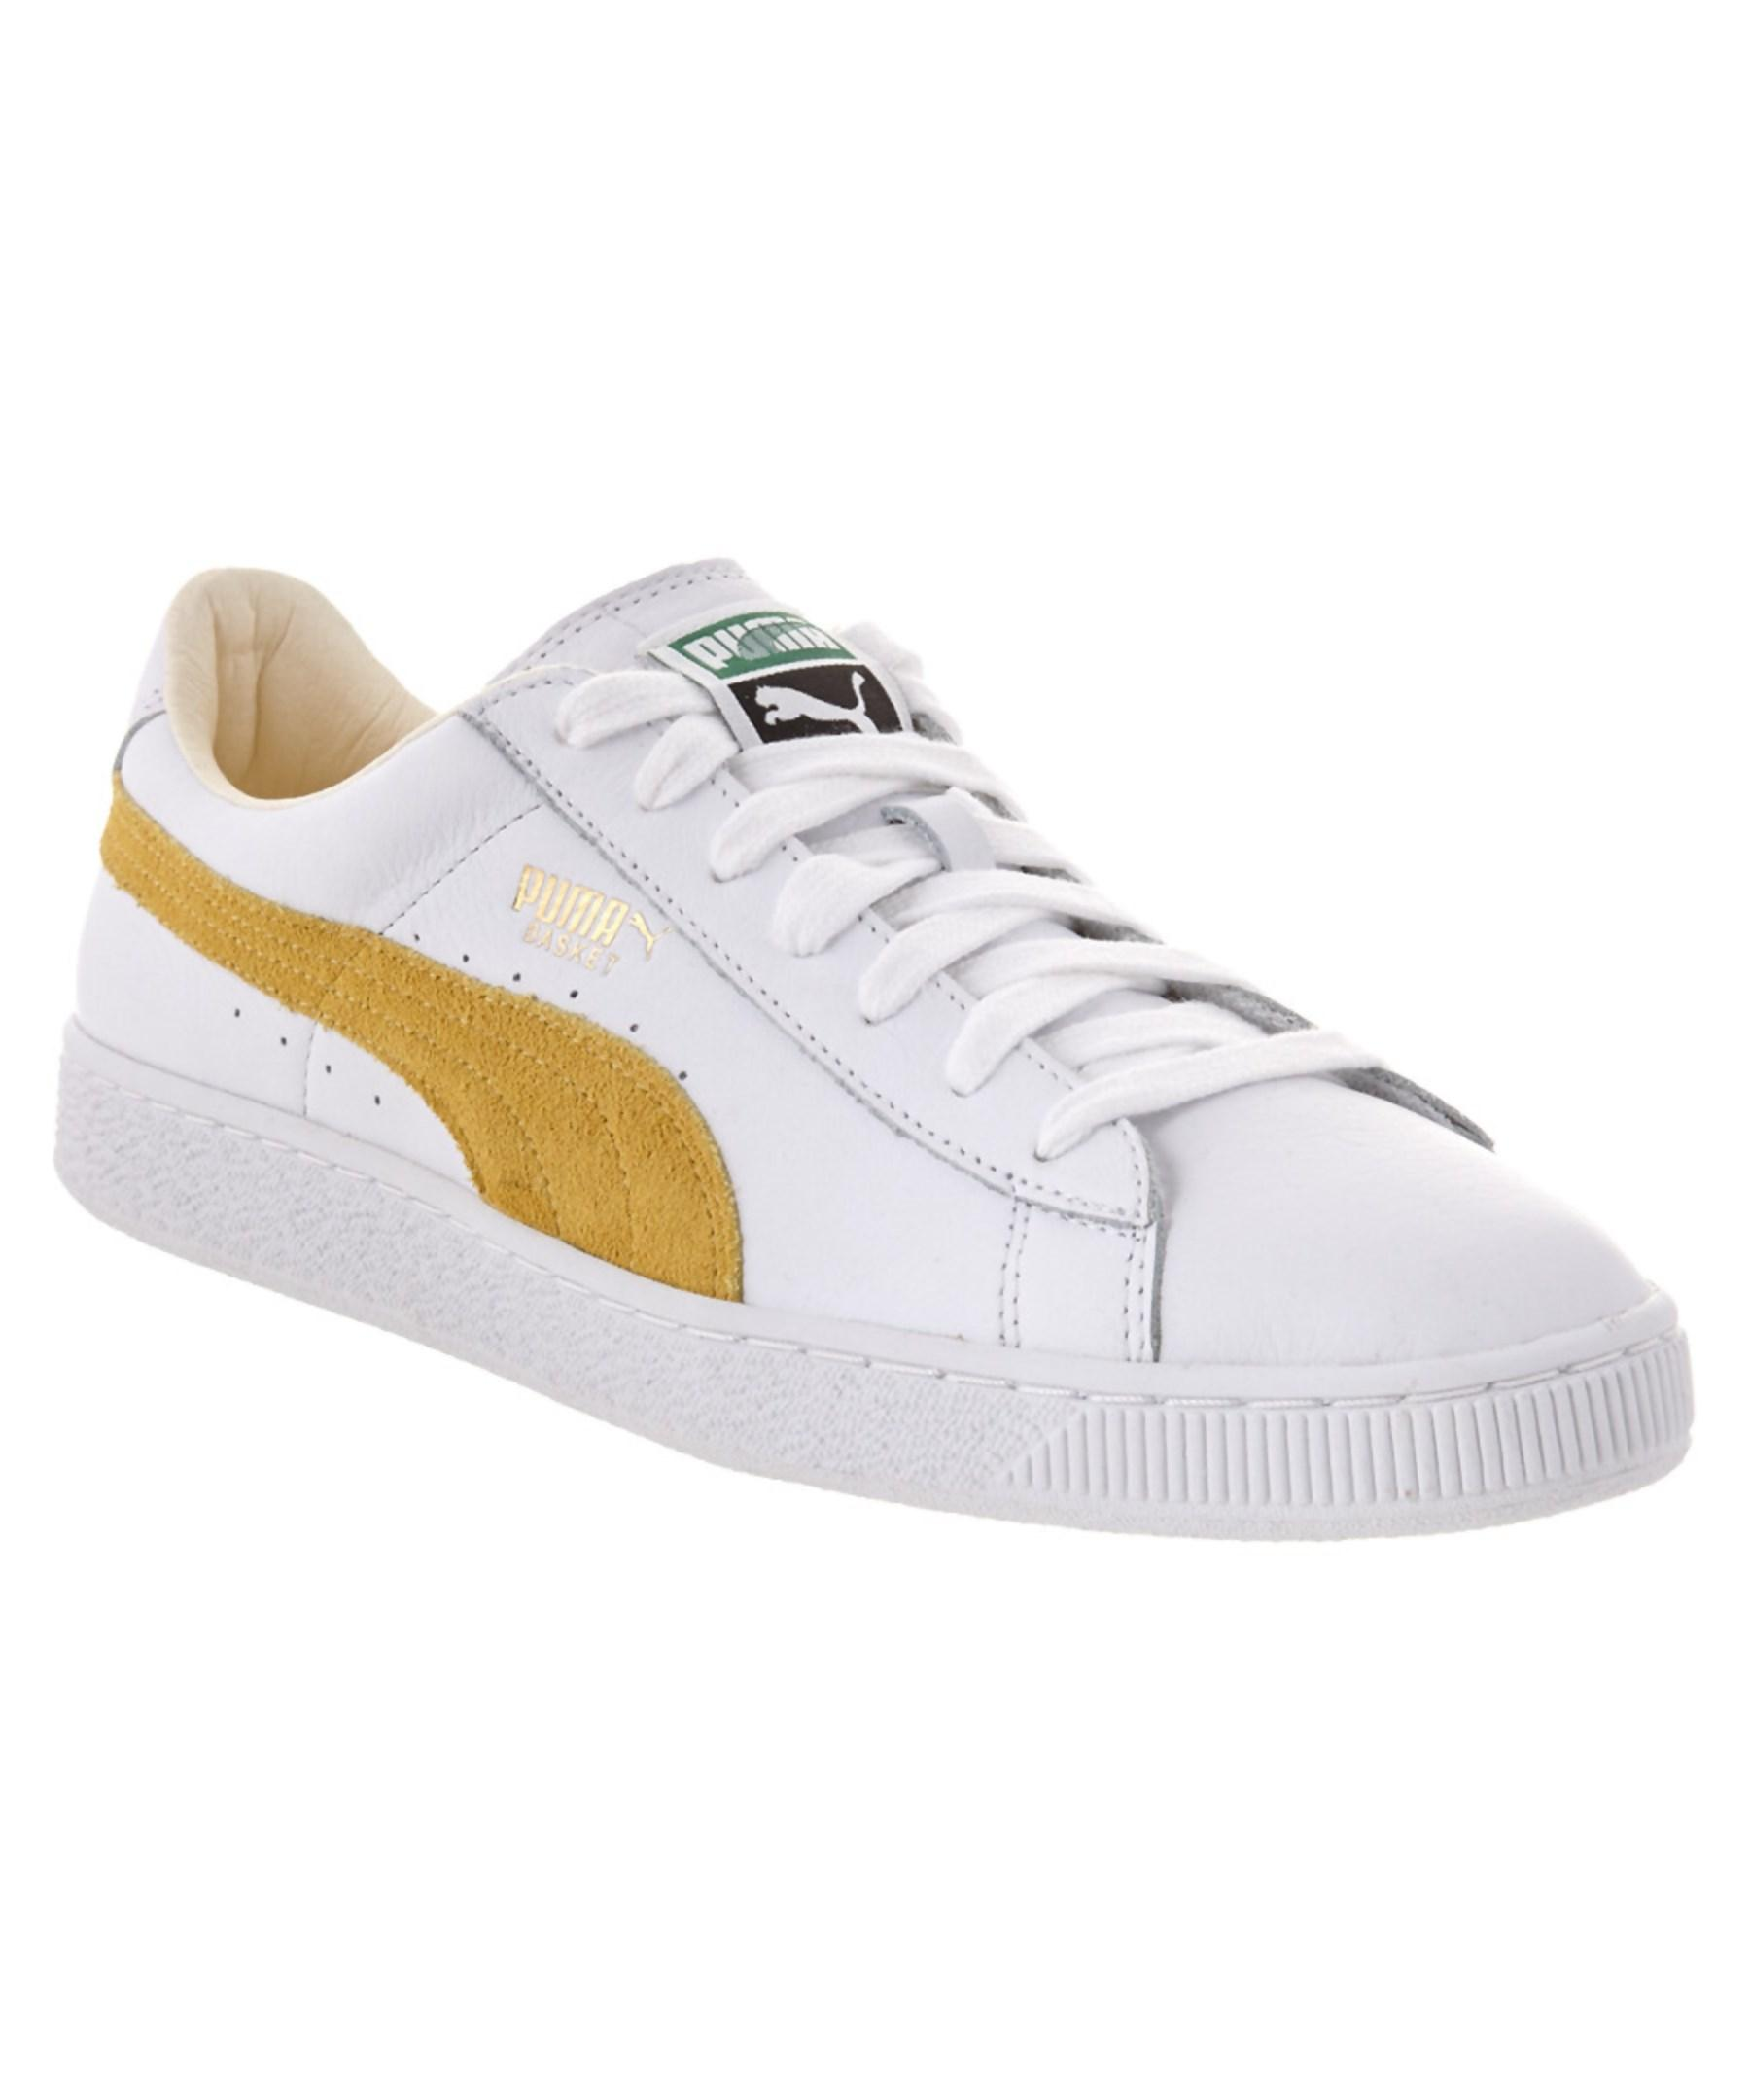 puma men 39 s basket classic leather sneaker in white for men lyst. Black Bedroom Furniture Sets. Home Design Ideas